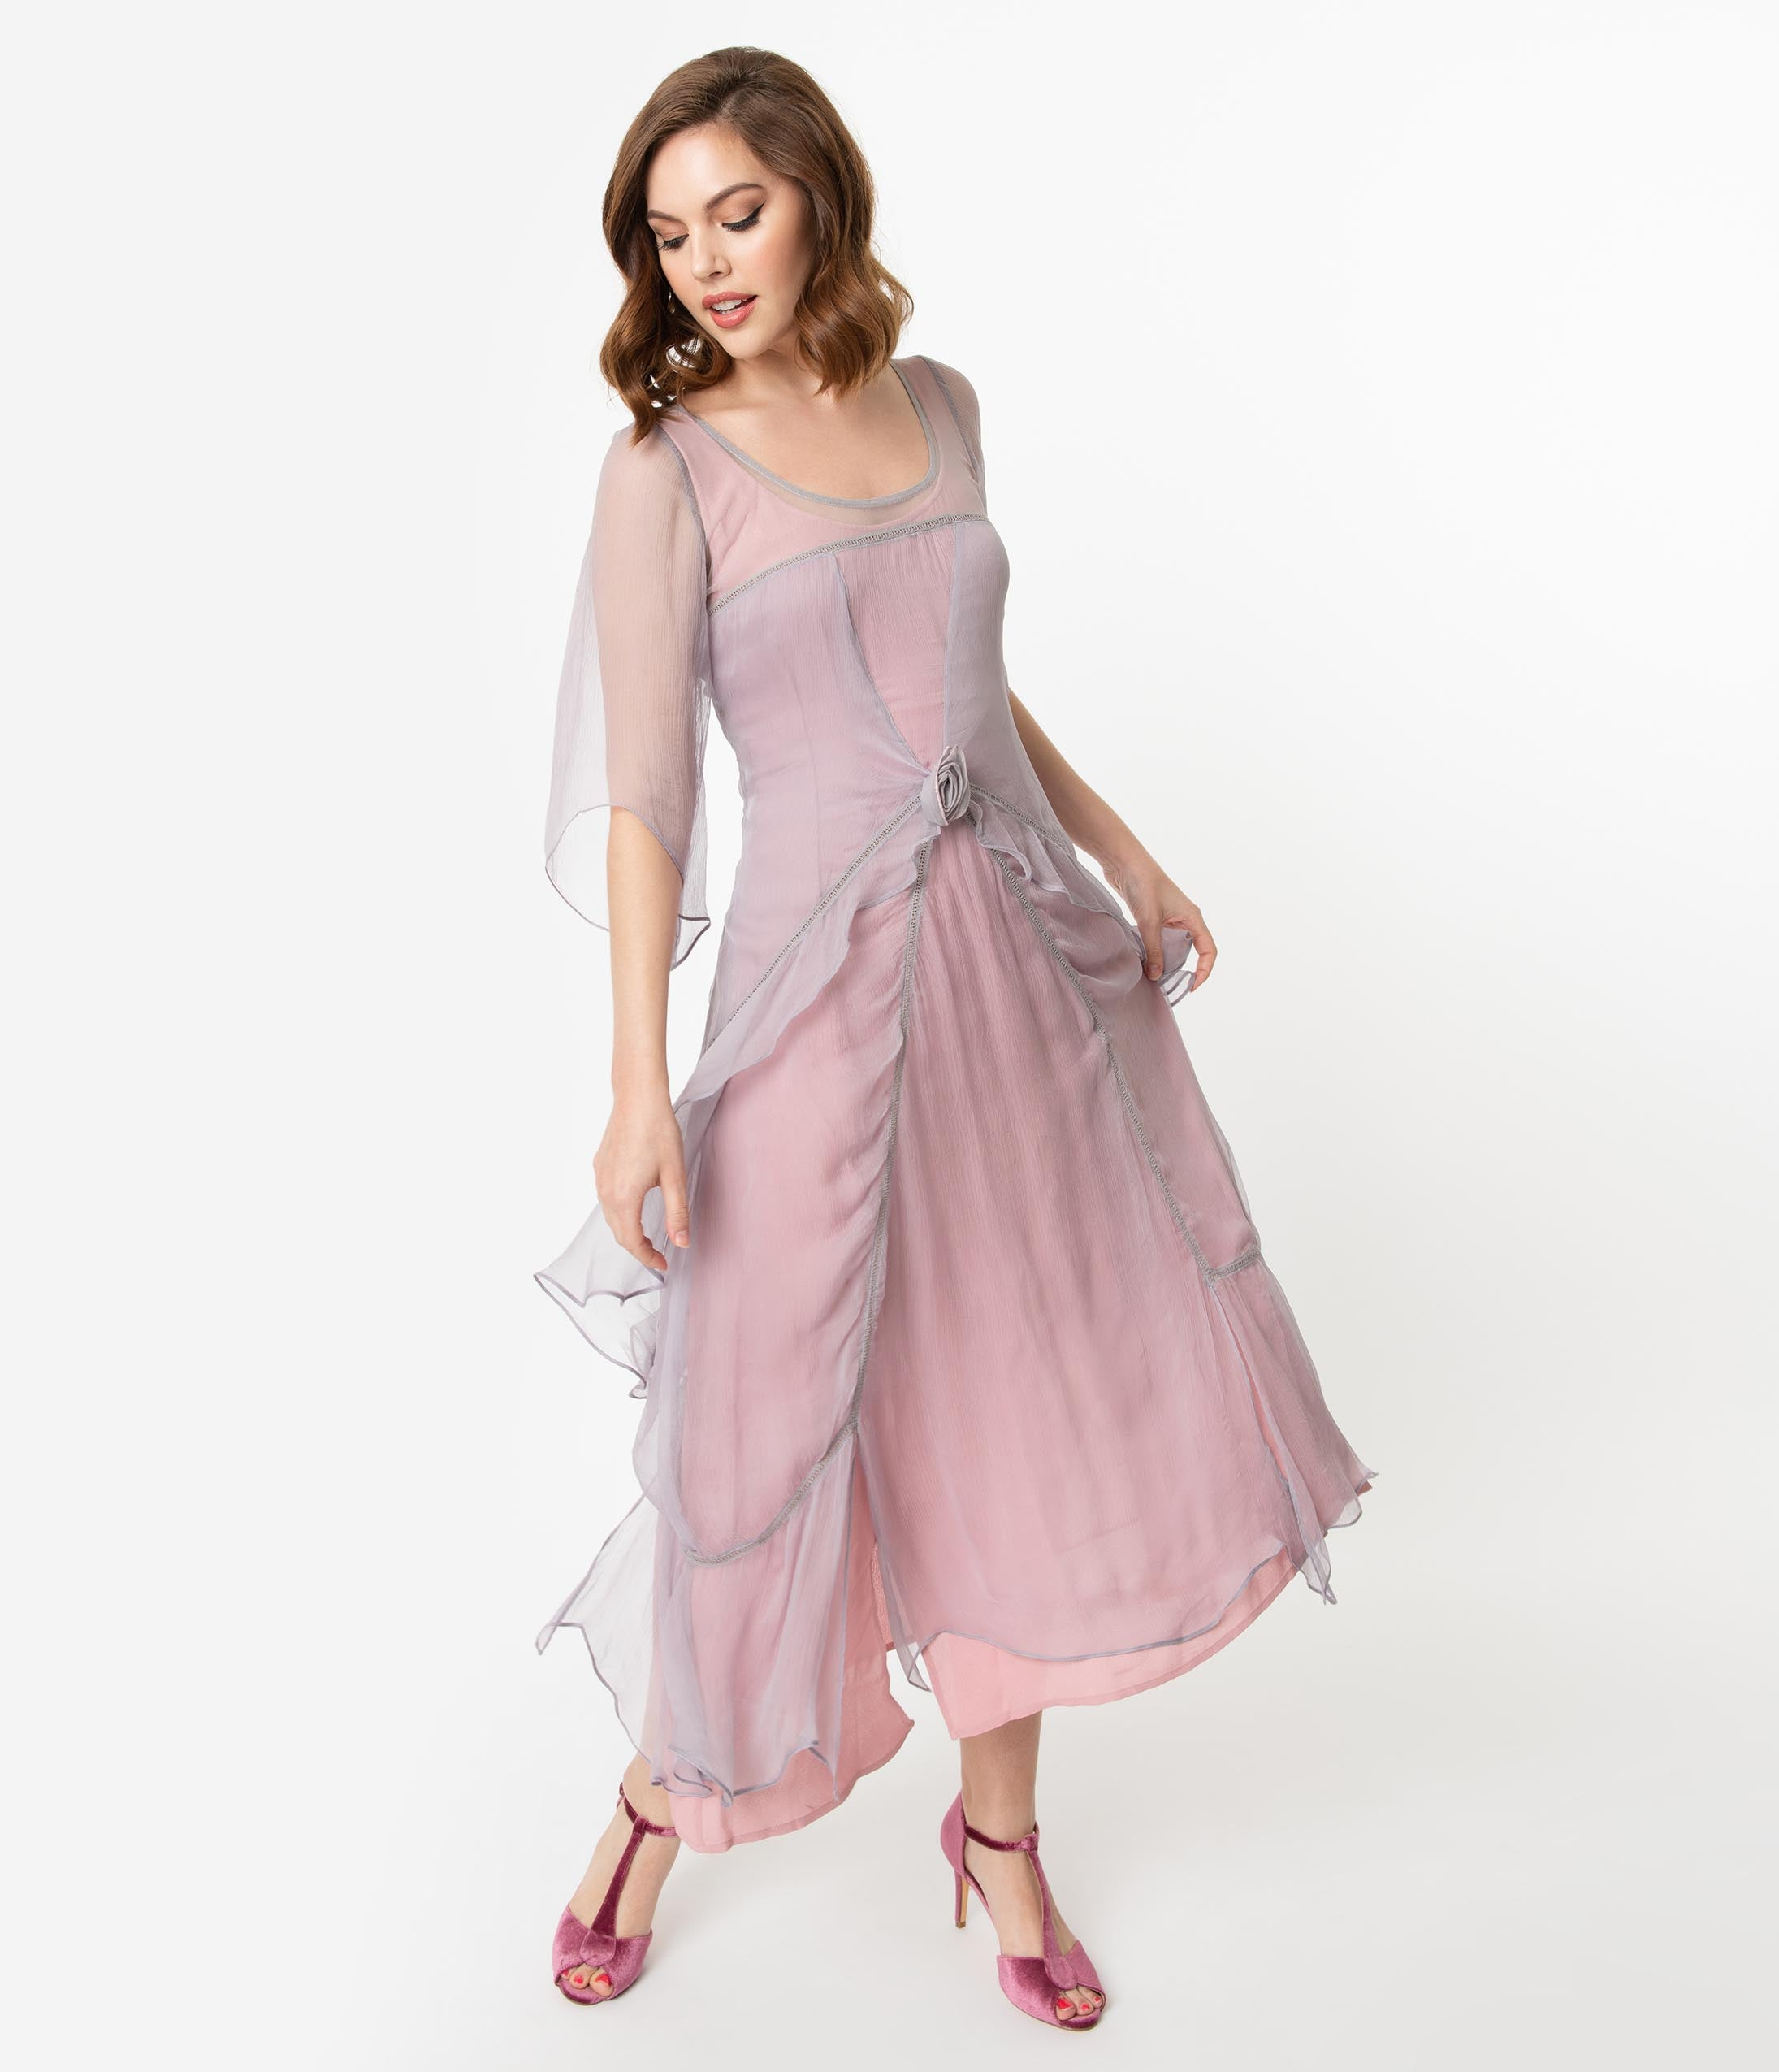 Vintage Evening Dresses and Formal Evening Gowns Vintage Style Mauve  Pink Chiffon Sleeved Edwardian Flapper Dress $228.00 AT vintagedancer.com